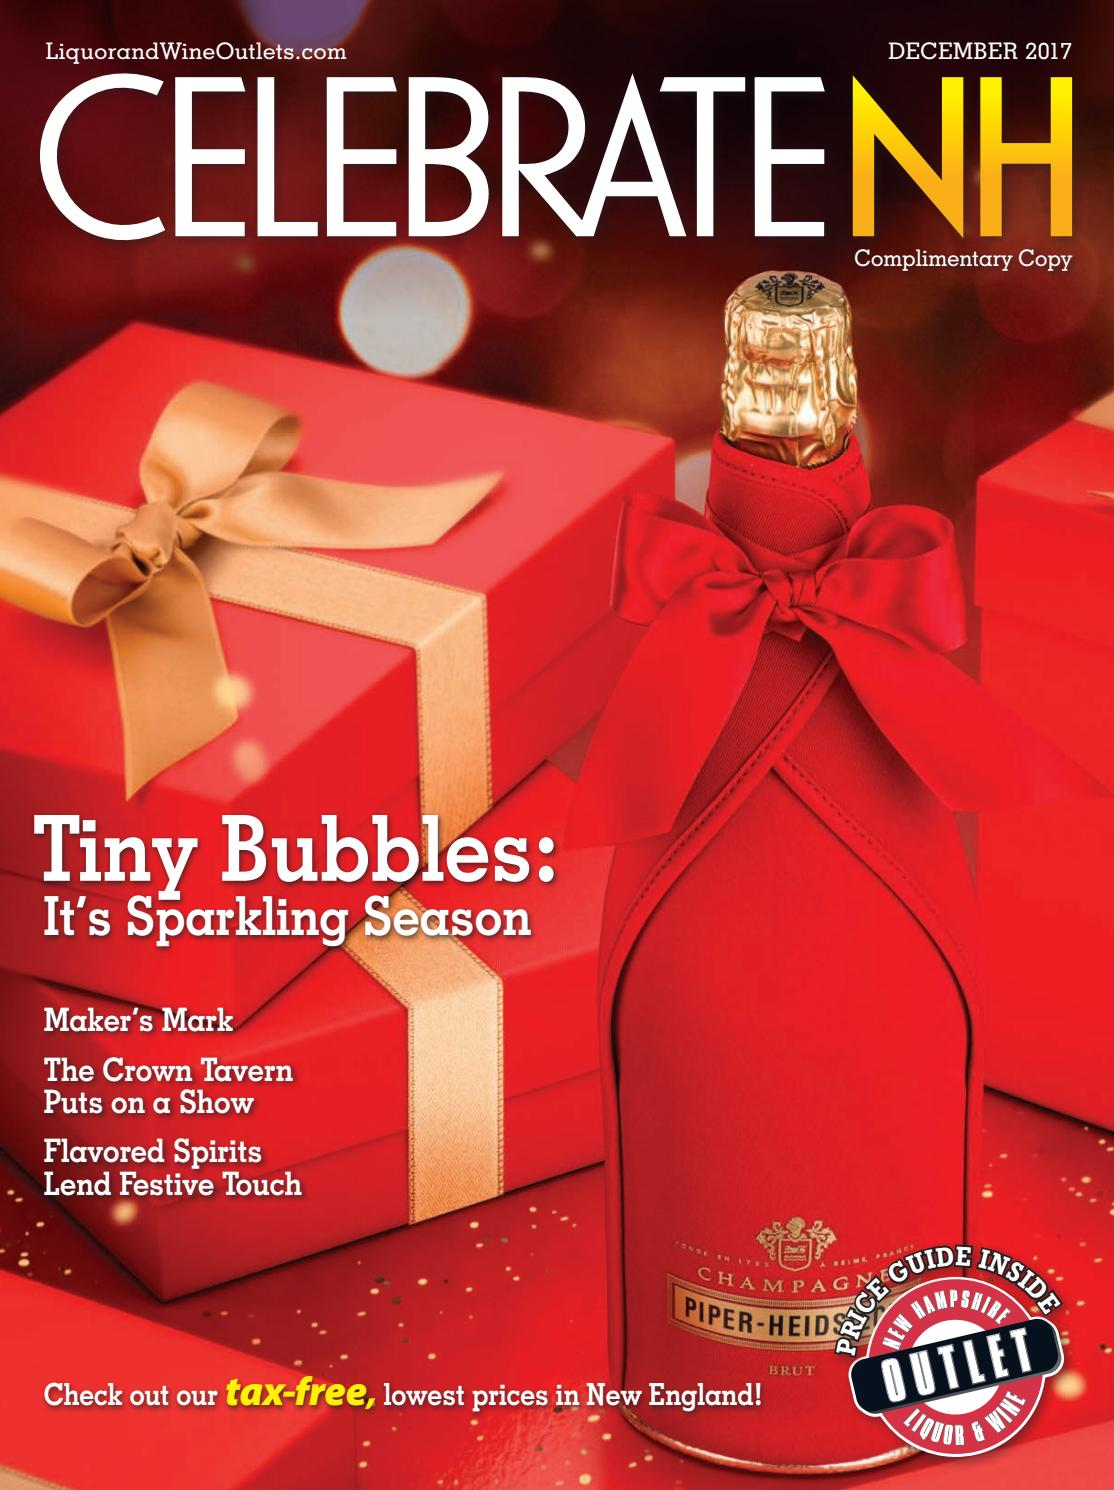 0d8a9b1393 Celebrate NH December 2017 by McLean Communications - issuu